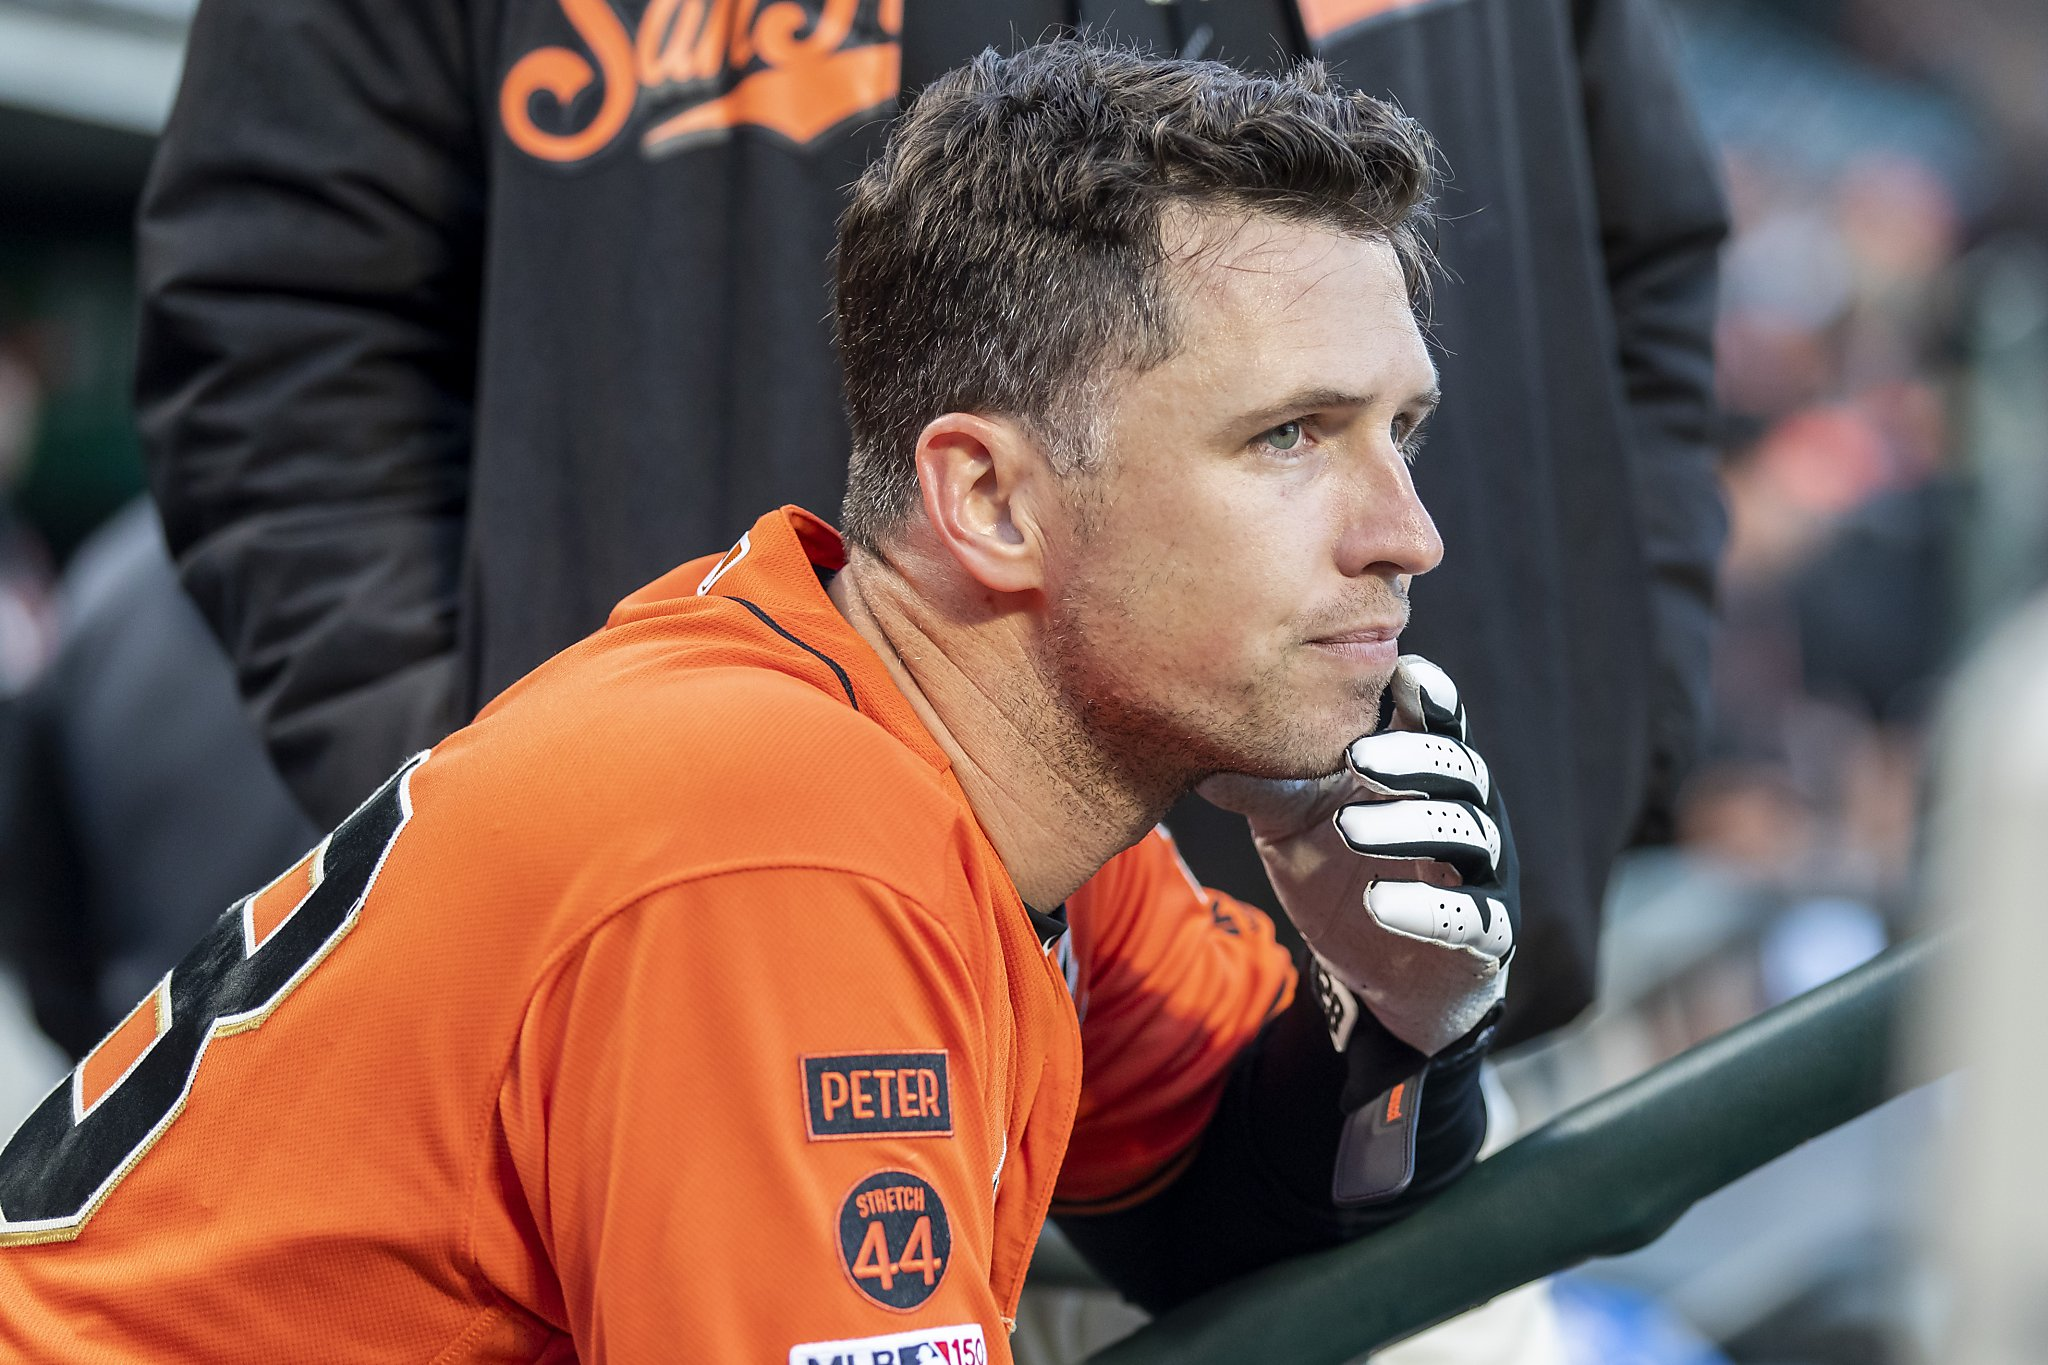 Giants mailbag: Will Joey Bart debut soon, shifting Buster Posey to first base?